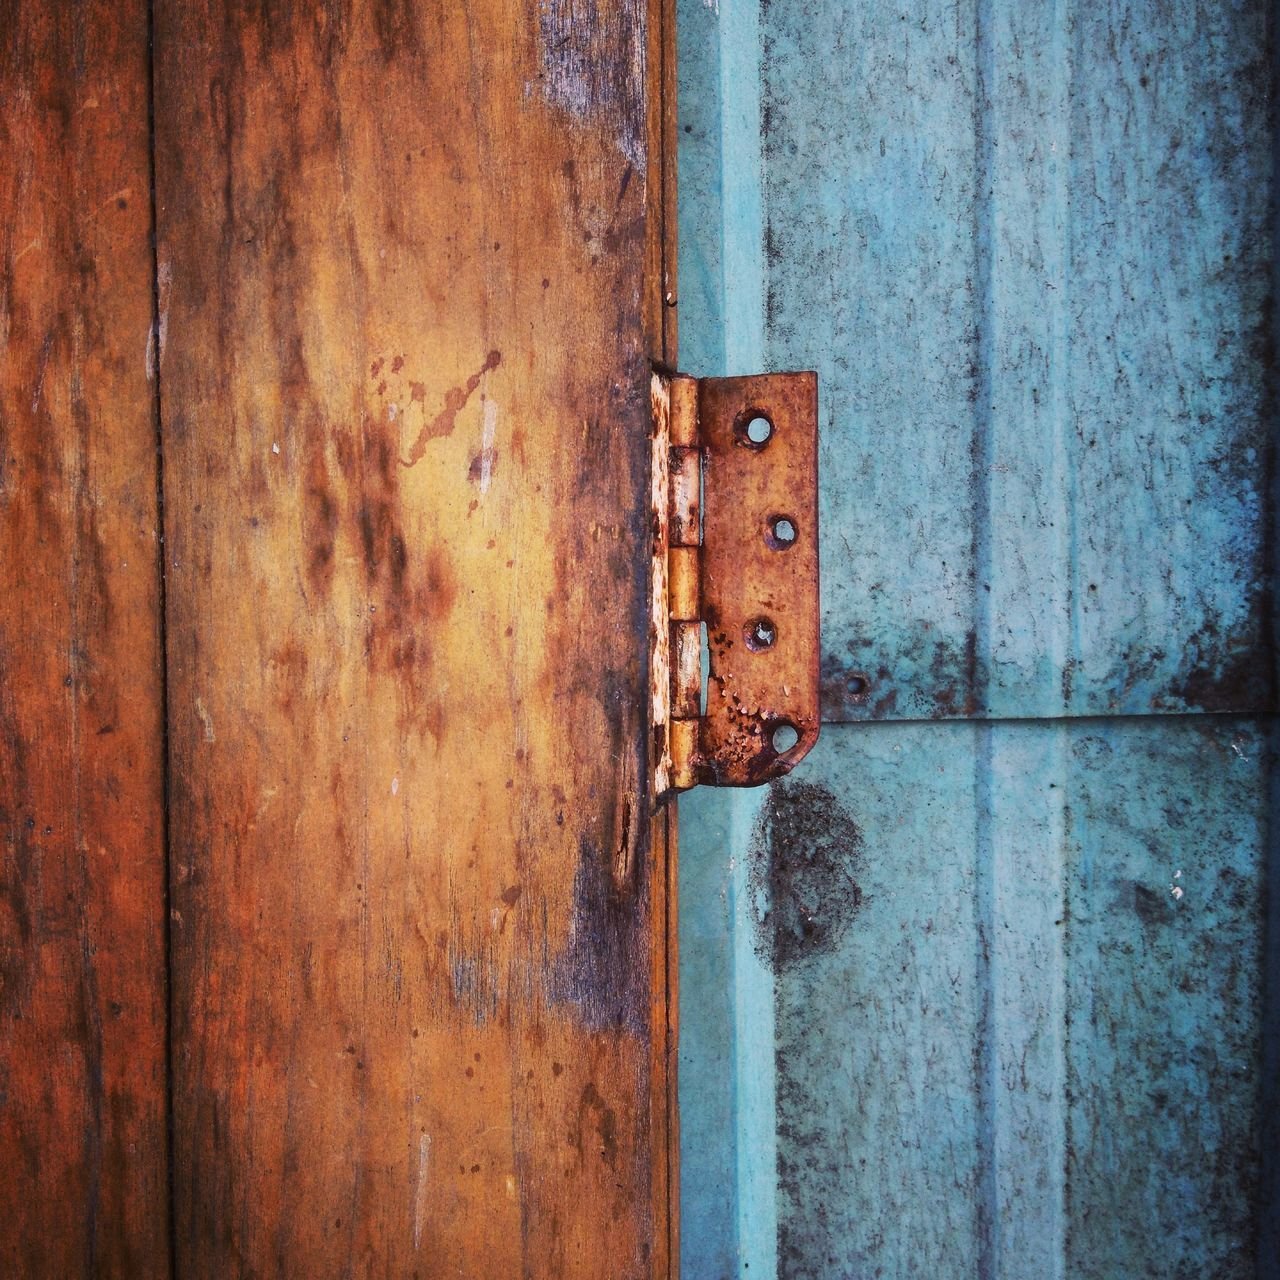 Door Wood - Material Rusty Old Close-up Blue Weathered Full Frame No People Day Vibrant Color Outdoors Metal Structure Metal Bluelight